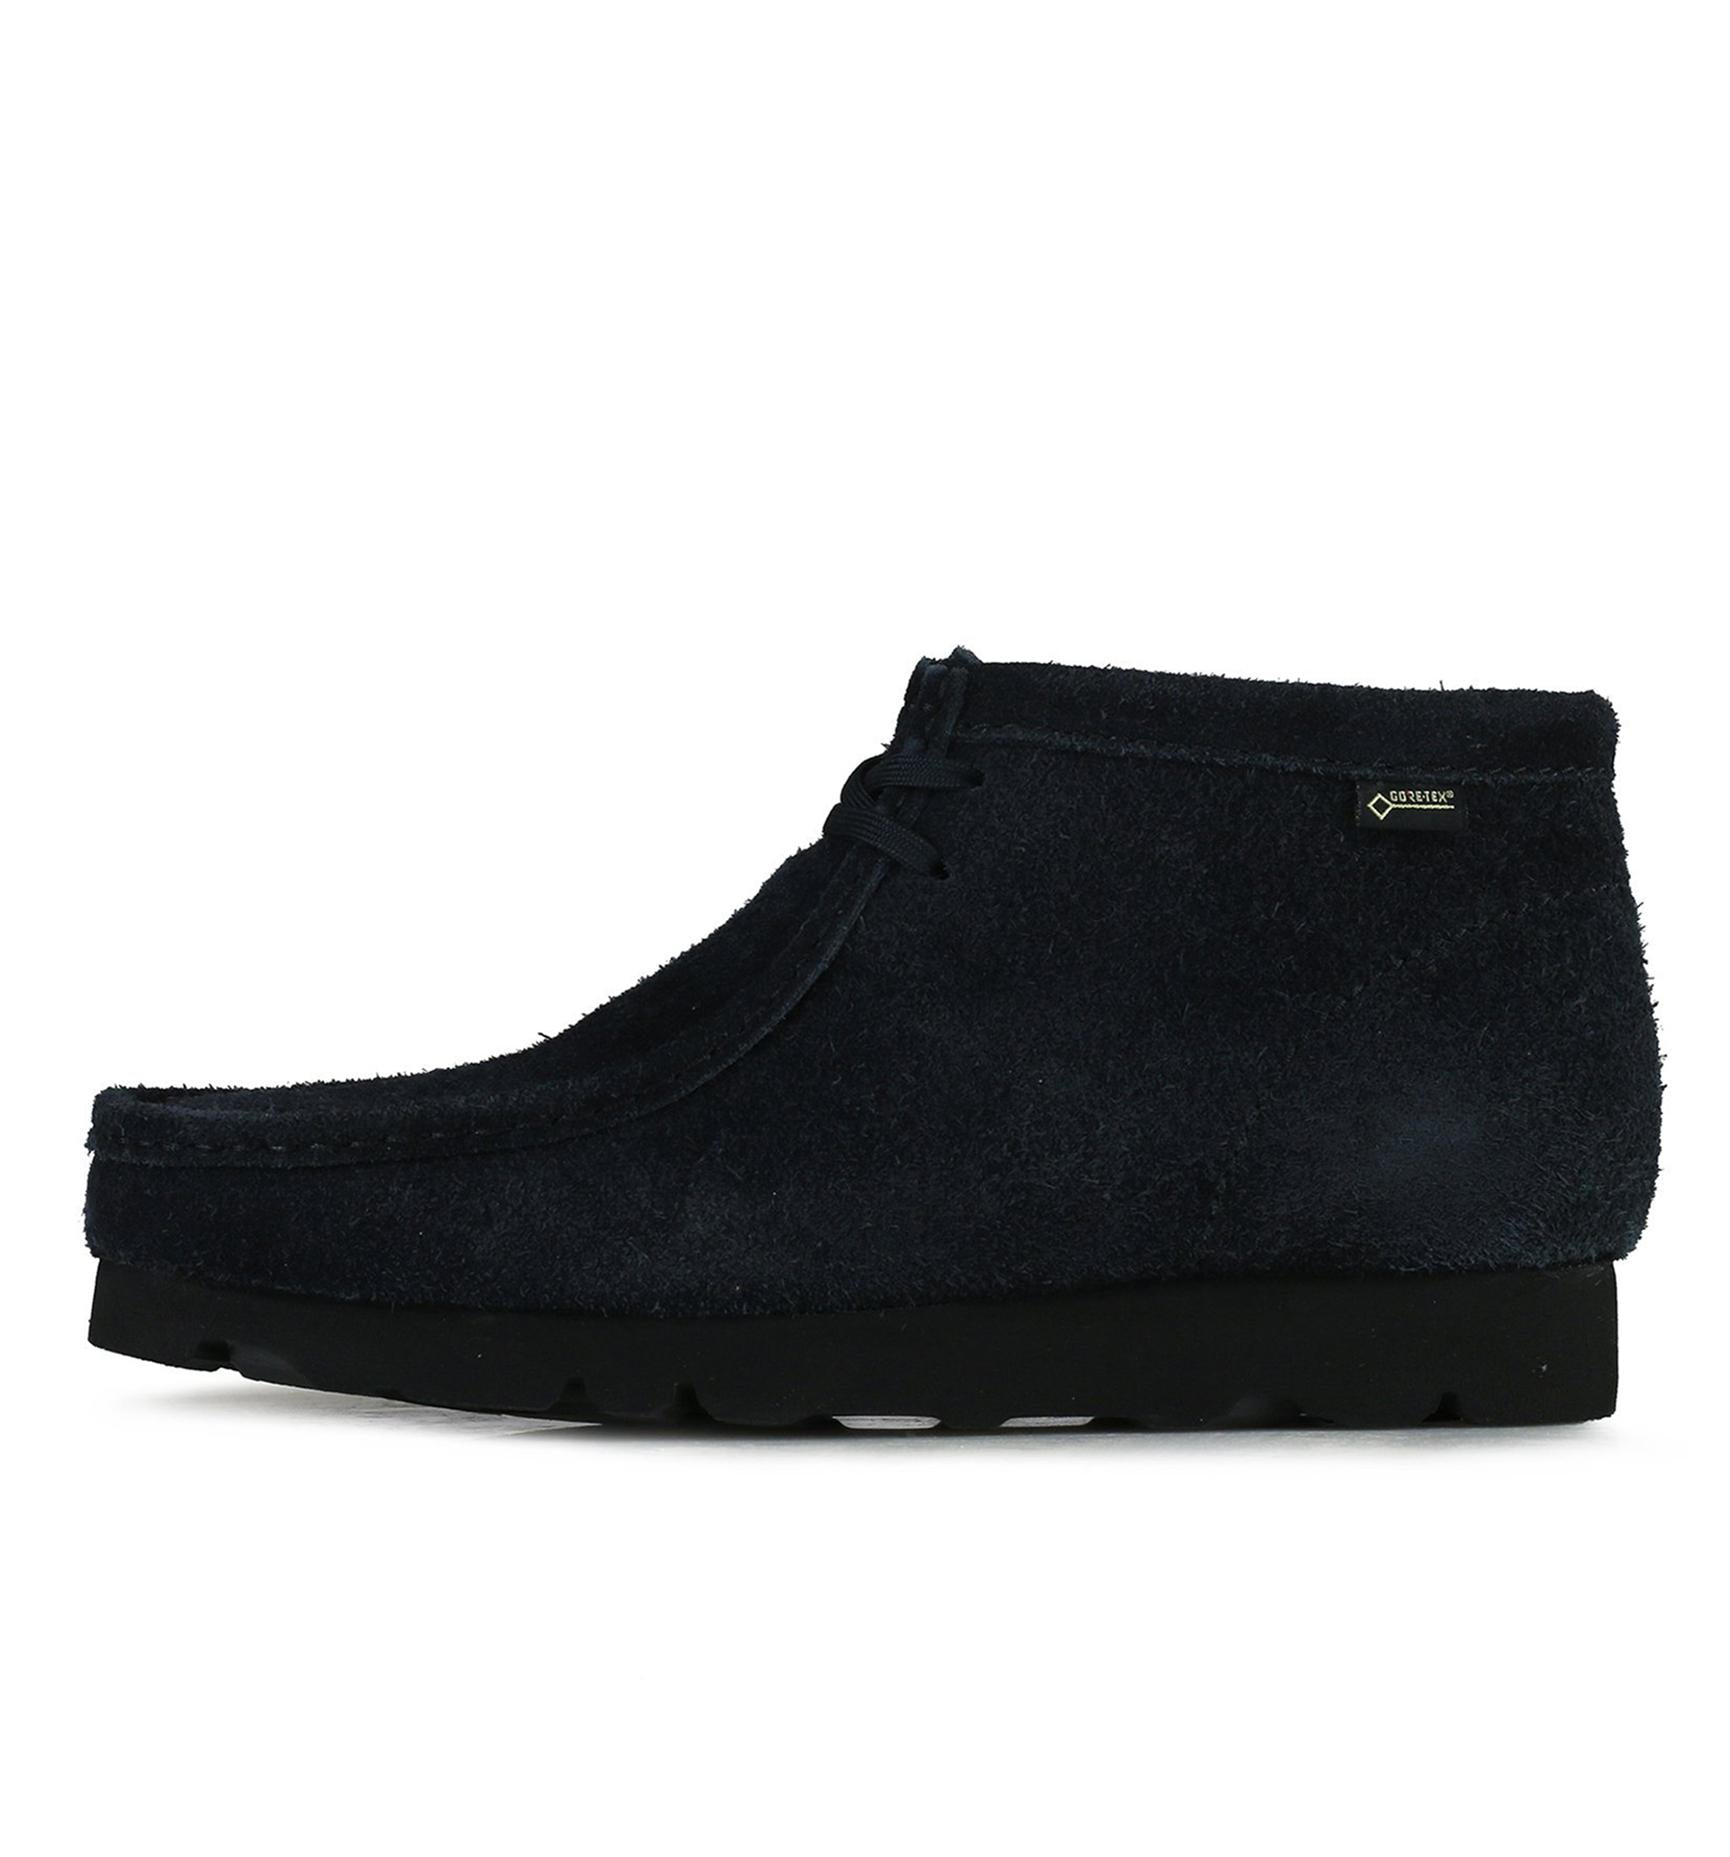 Clark's x Beams Tokyo Wallabee GTX - Navy Footwear from Clarks 103235 in 8 and Navy and - Alife®